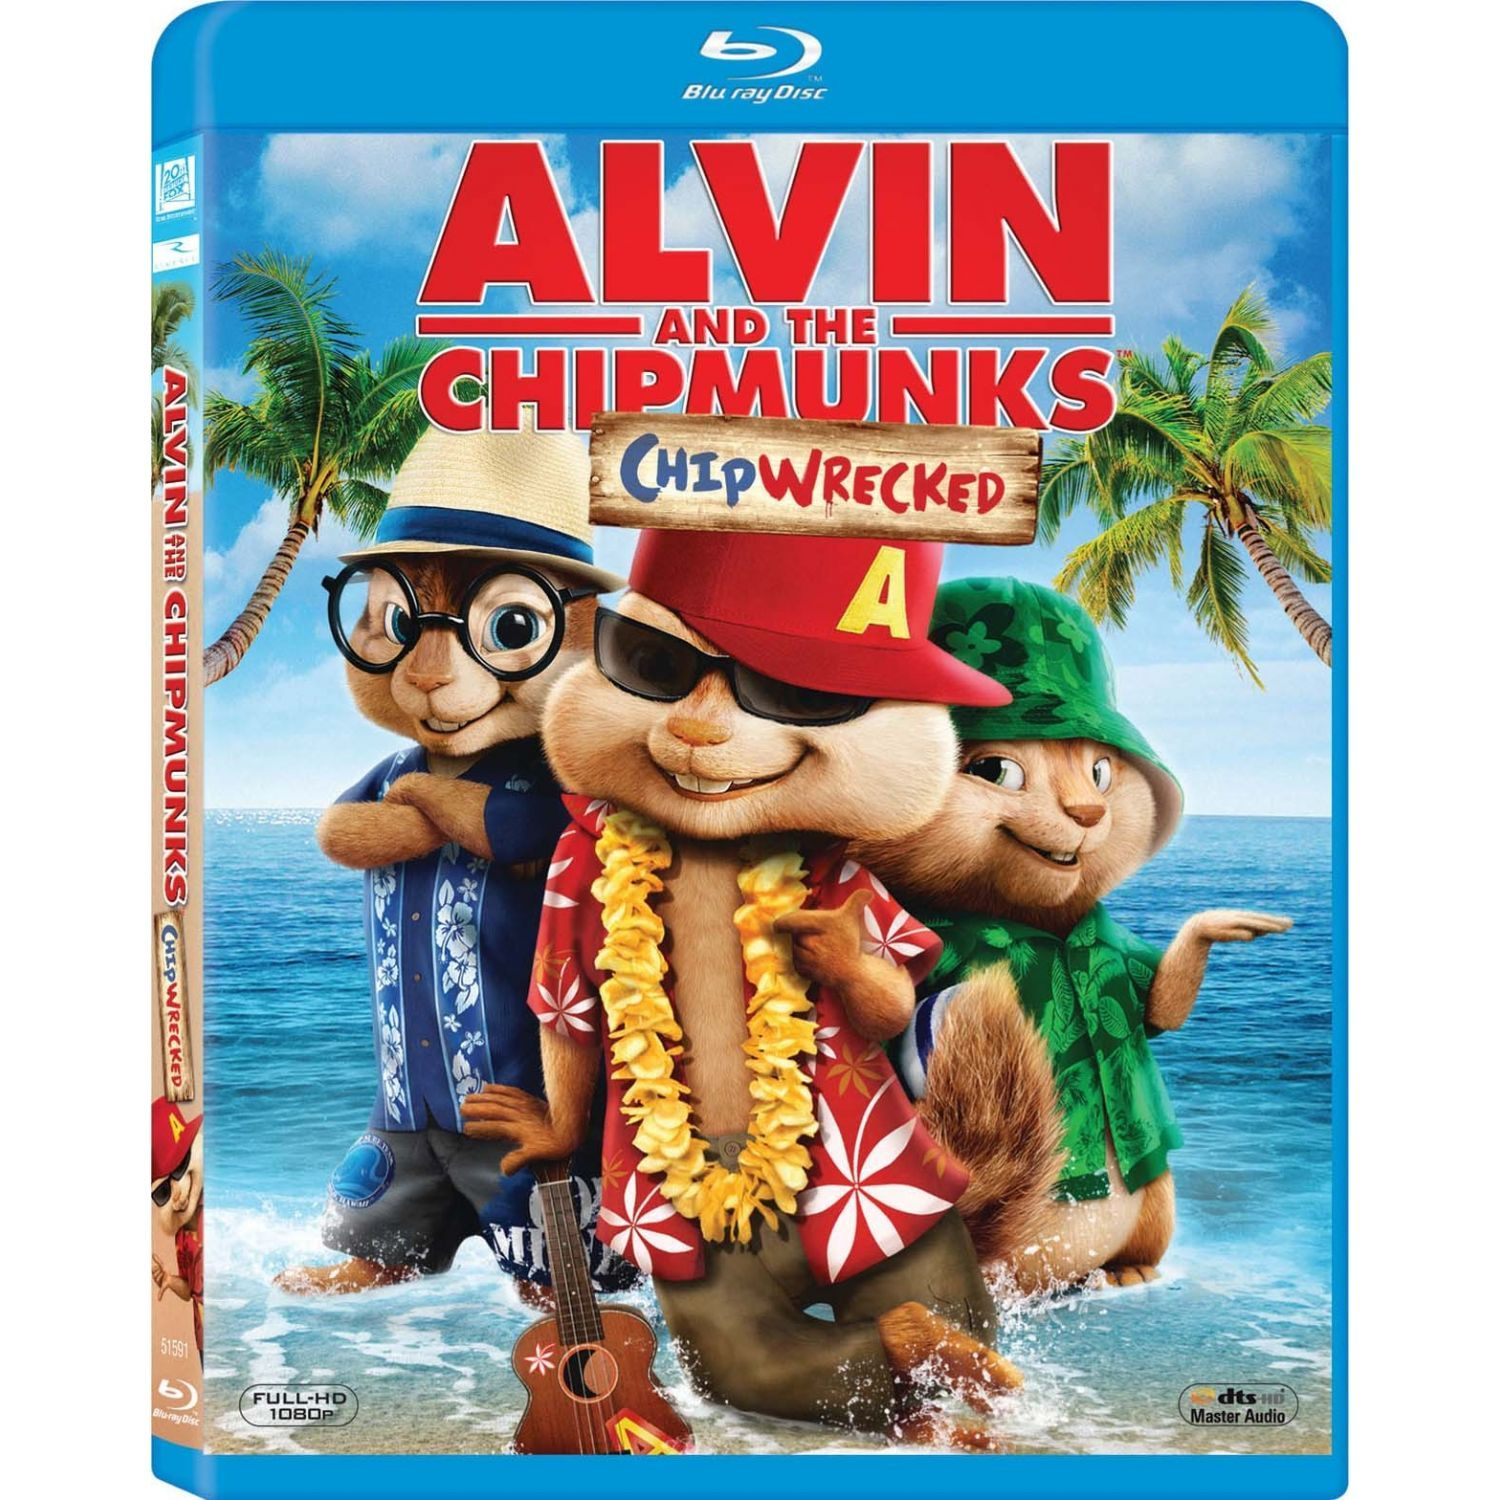 Alvin And The Chipmunks 3 Images albin and the chipmunks 3: chipwrecked (blu-ray) | hd-shop.gr